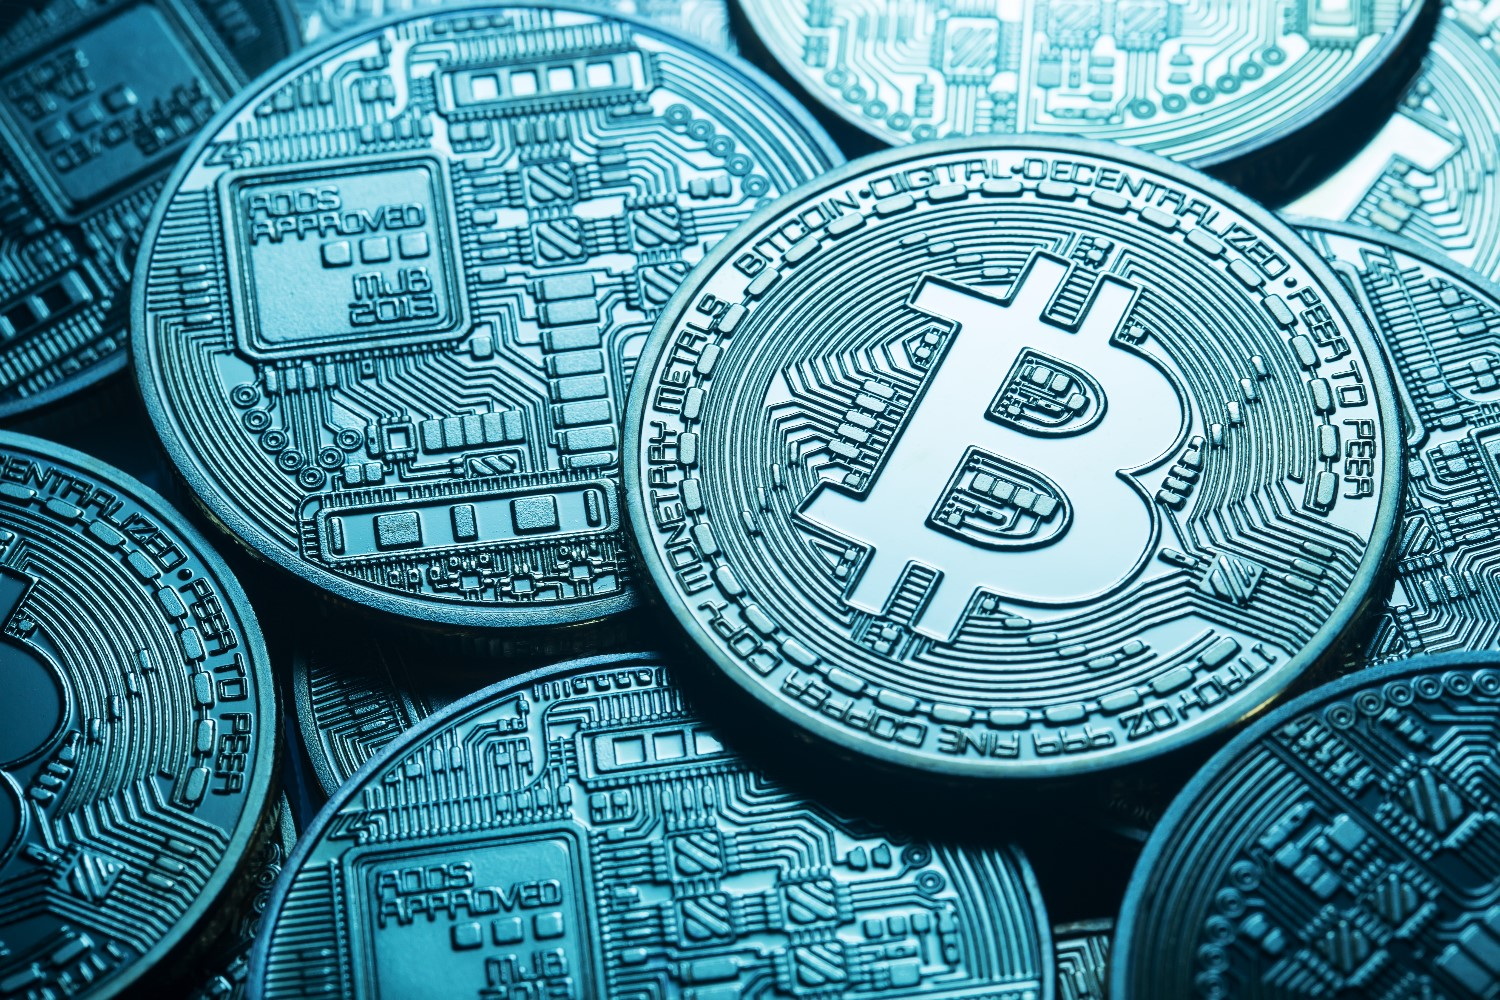 How much is 1 bitcoin